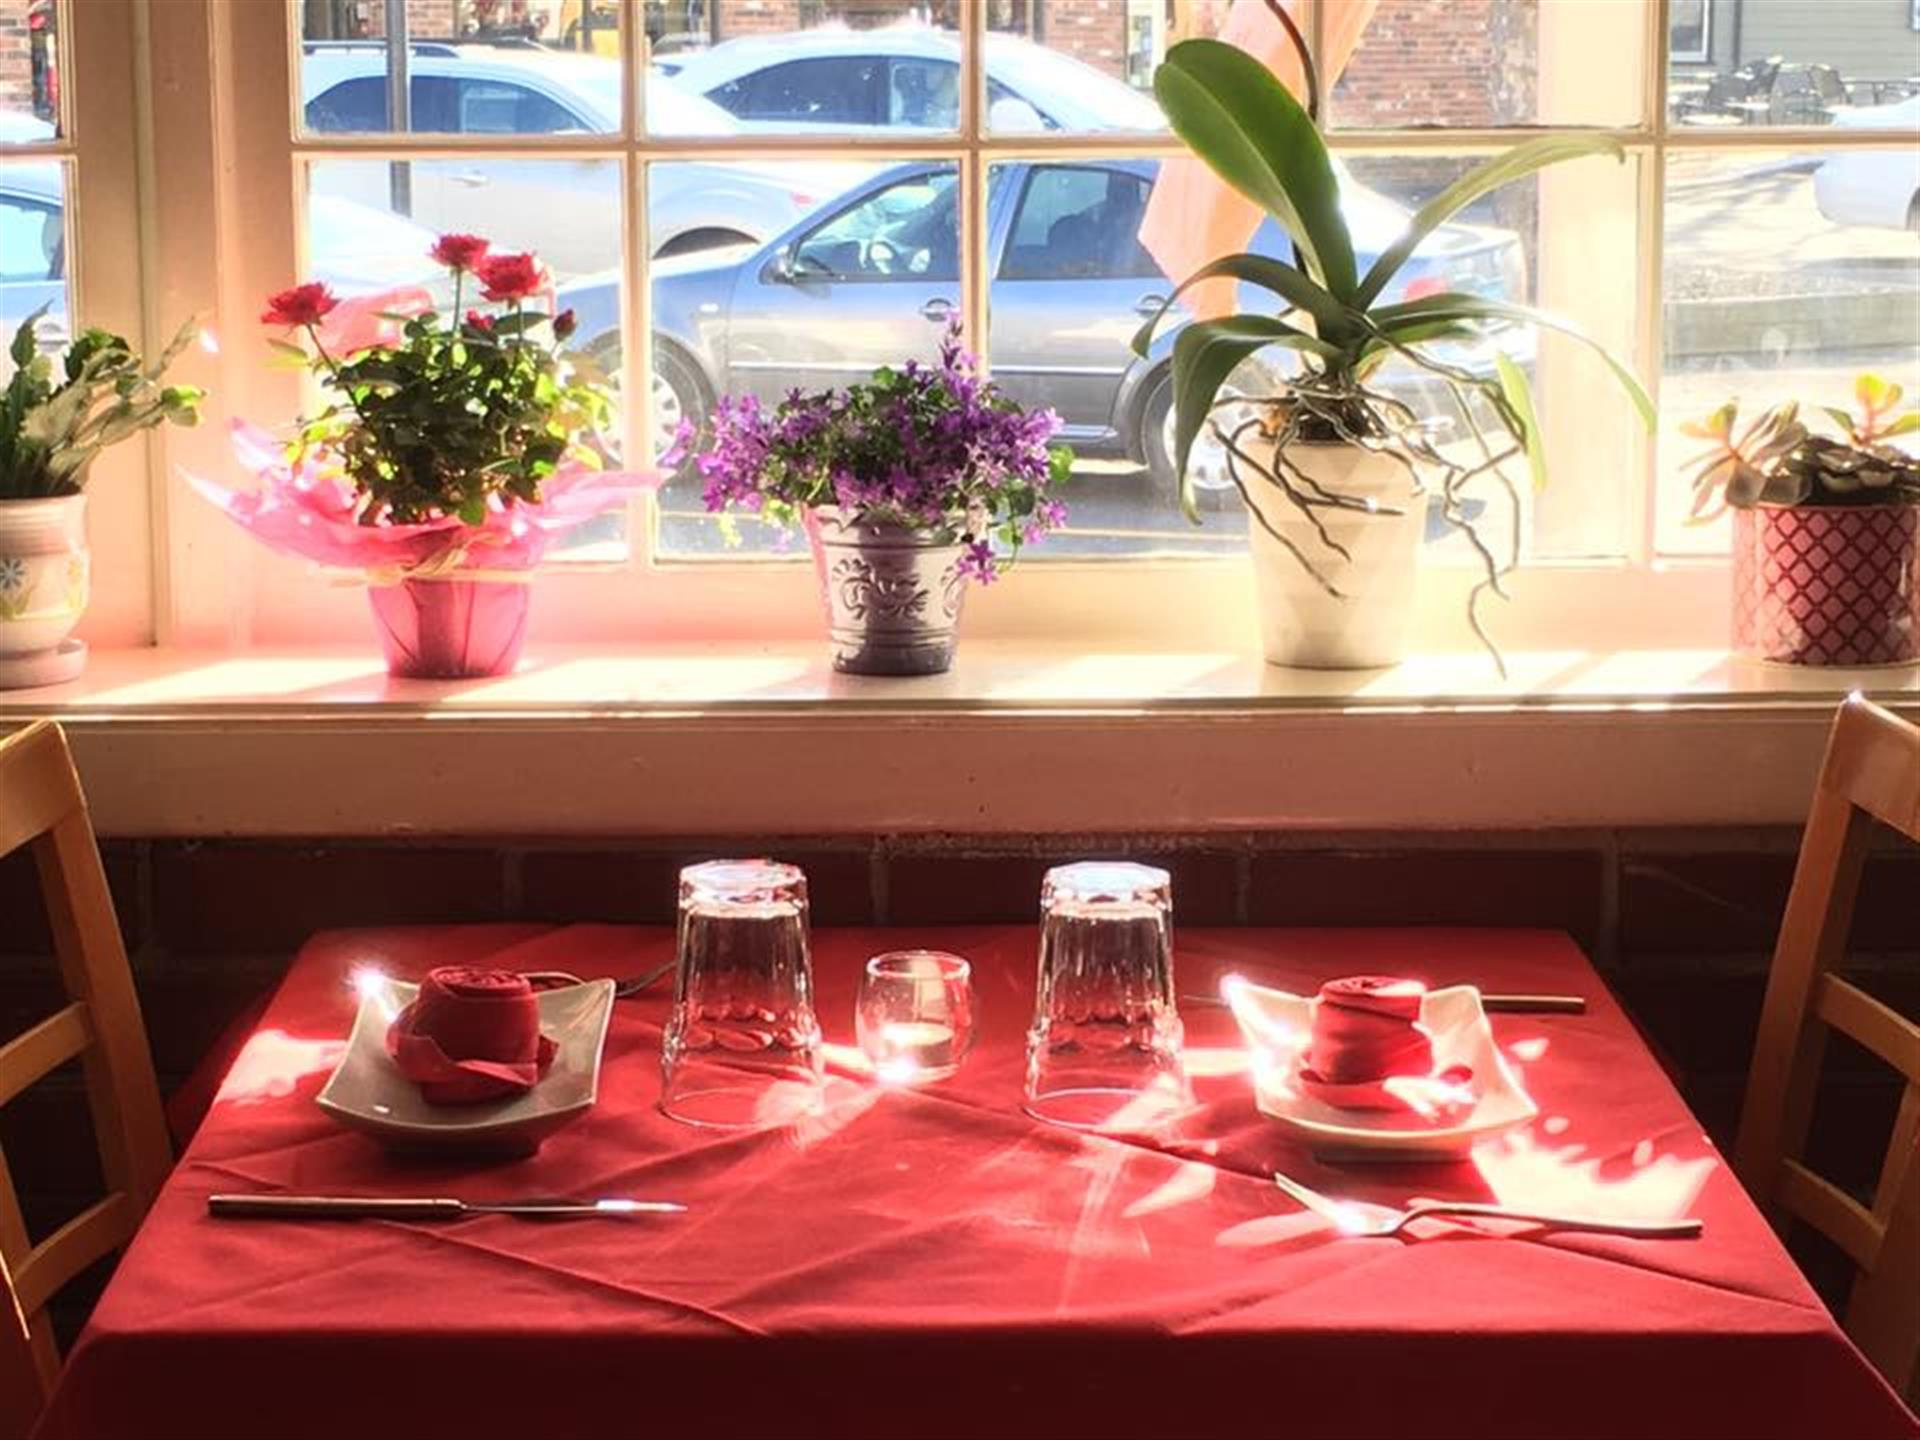 table next to a window. table has plates, silverware, wine glasses. flowers are in the window.